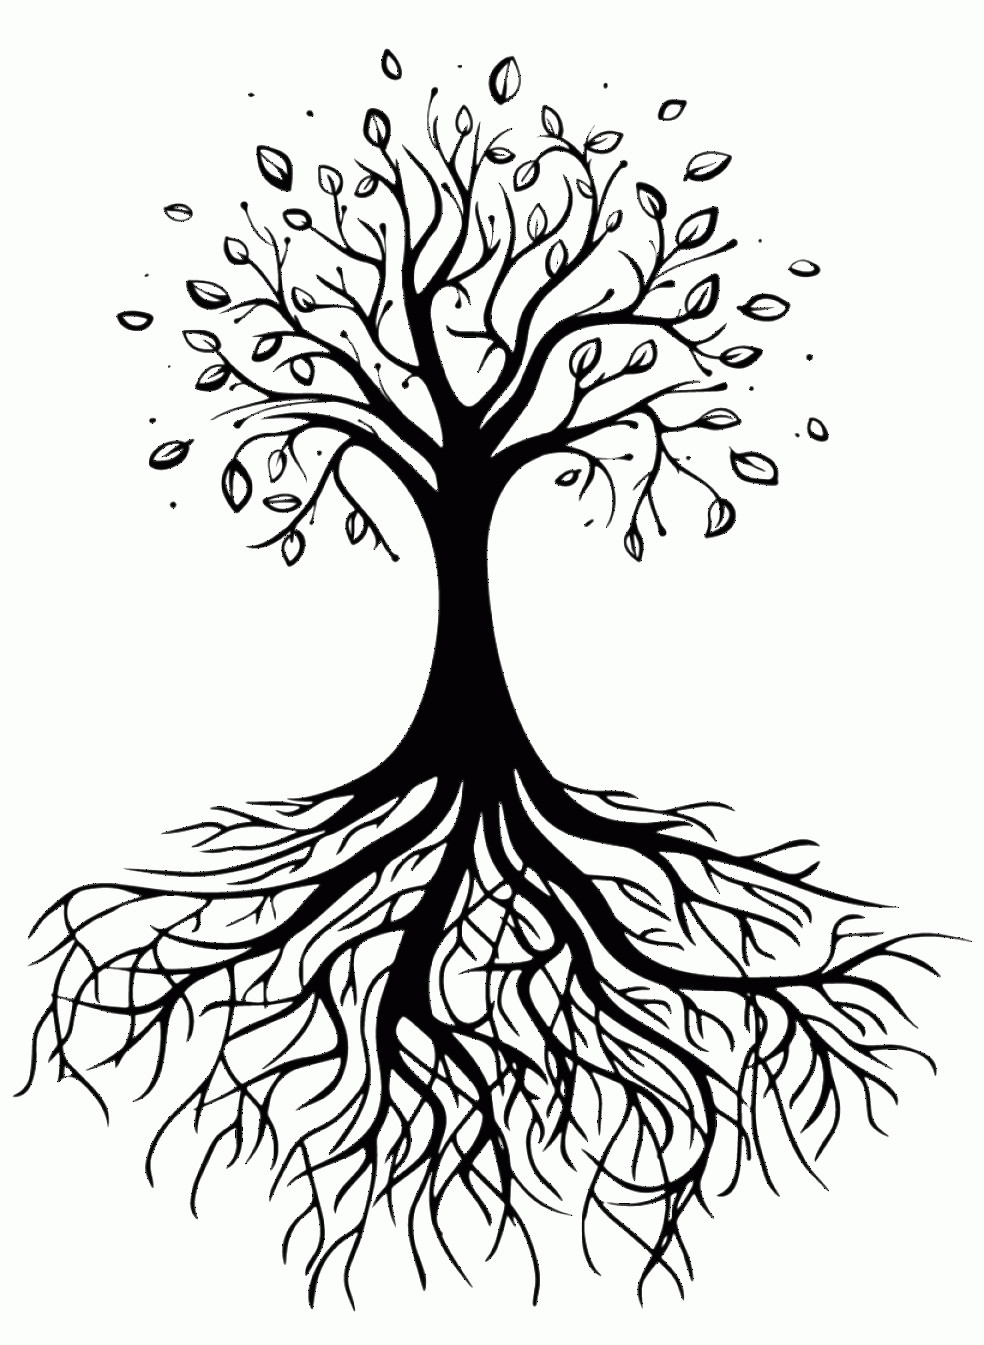 Vector Tree With Roots Drawing: Utrrqyuotransparent Tree Of Life With Roots Tree Roots